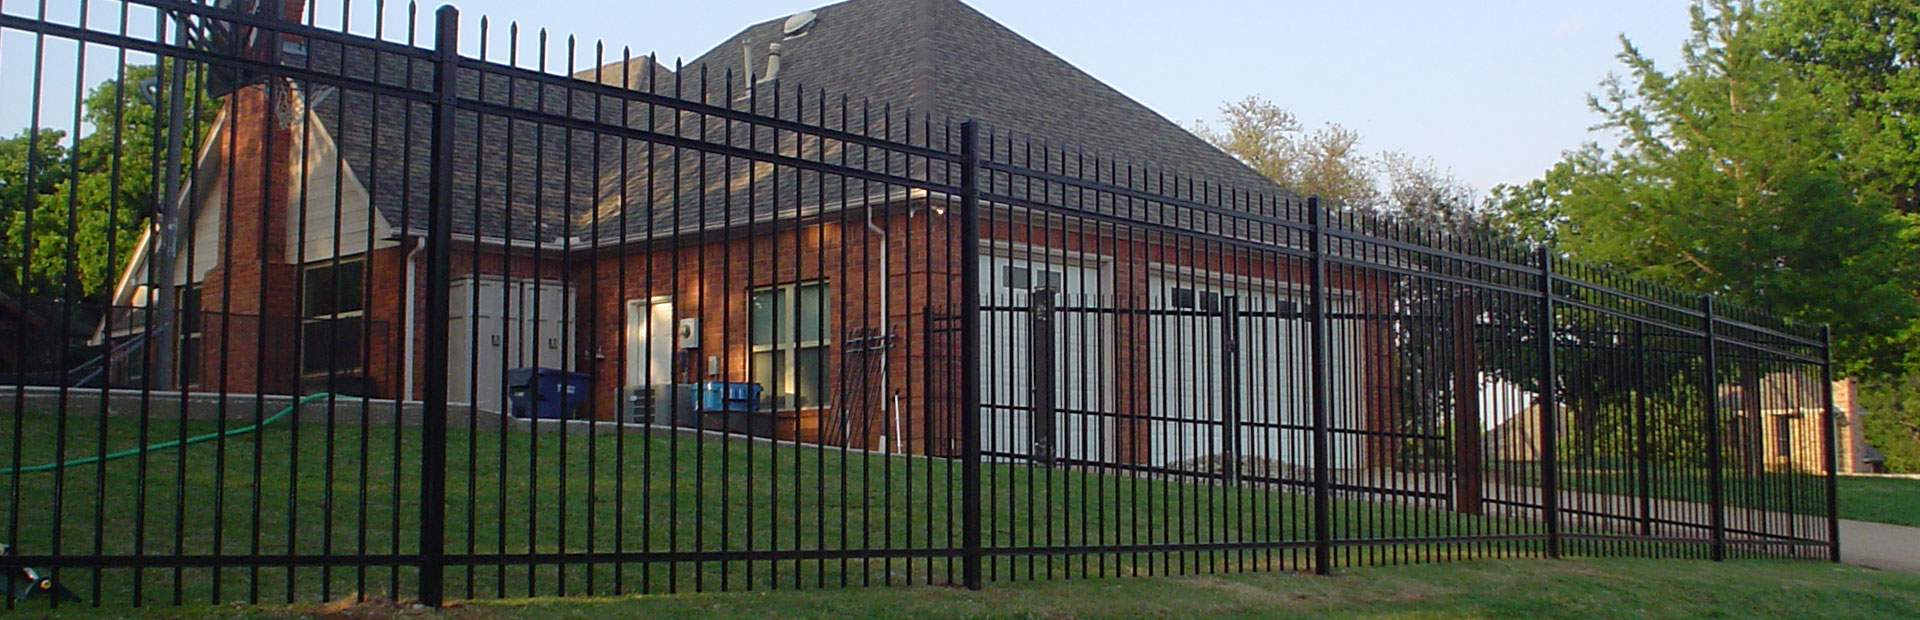 New Iron Fence Contractor